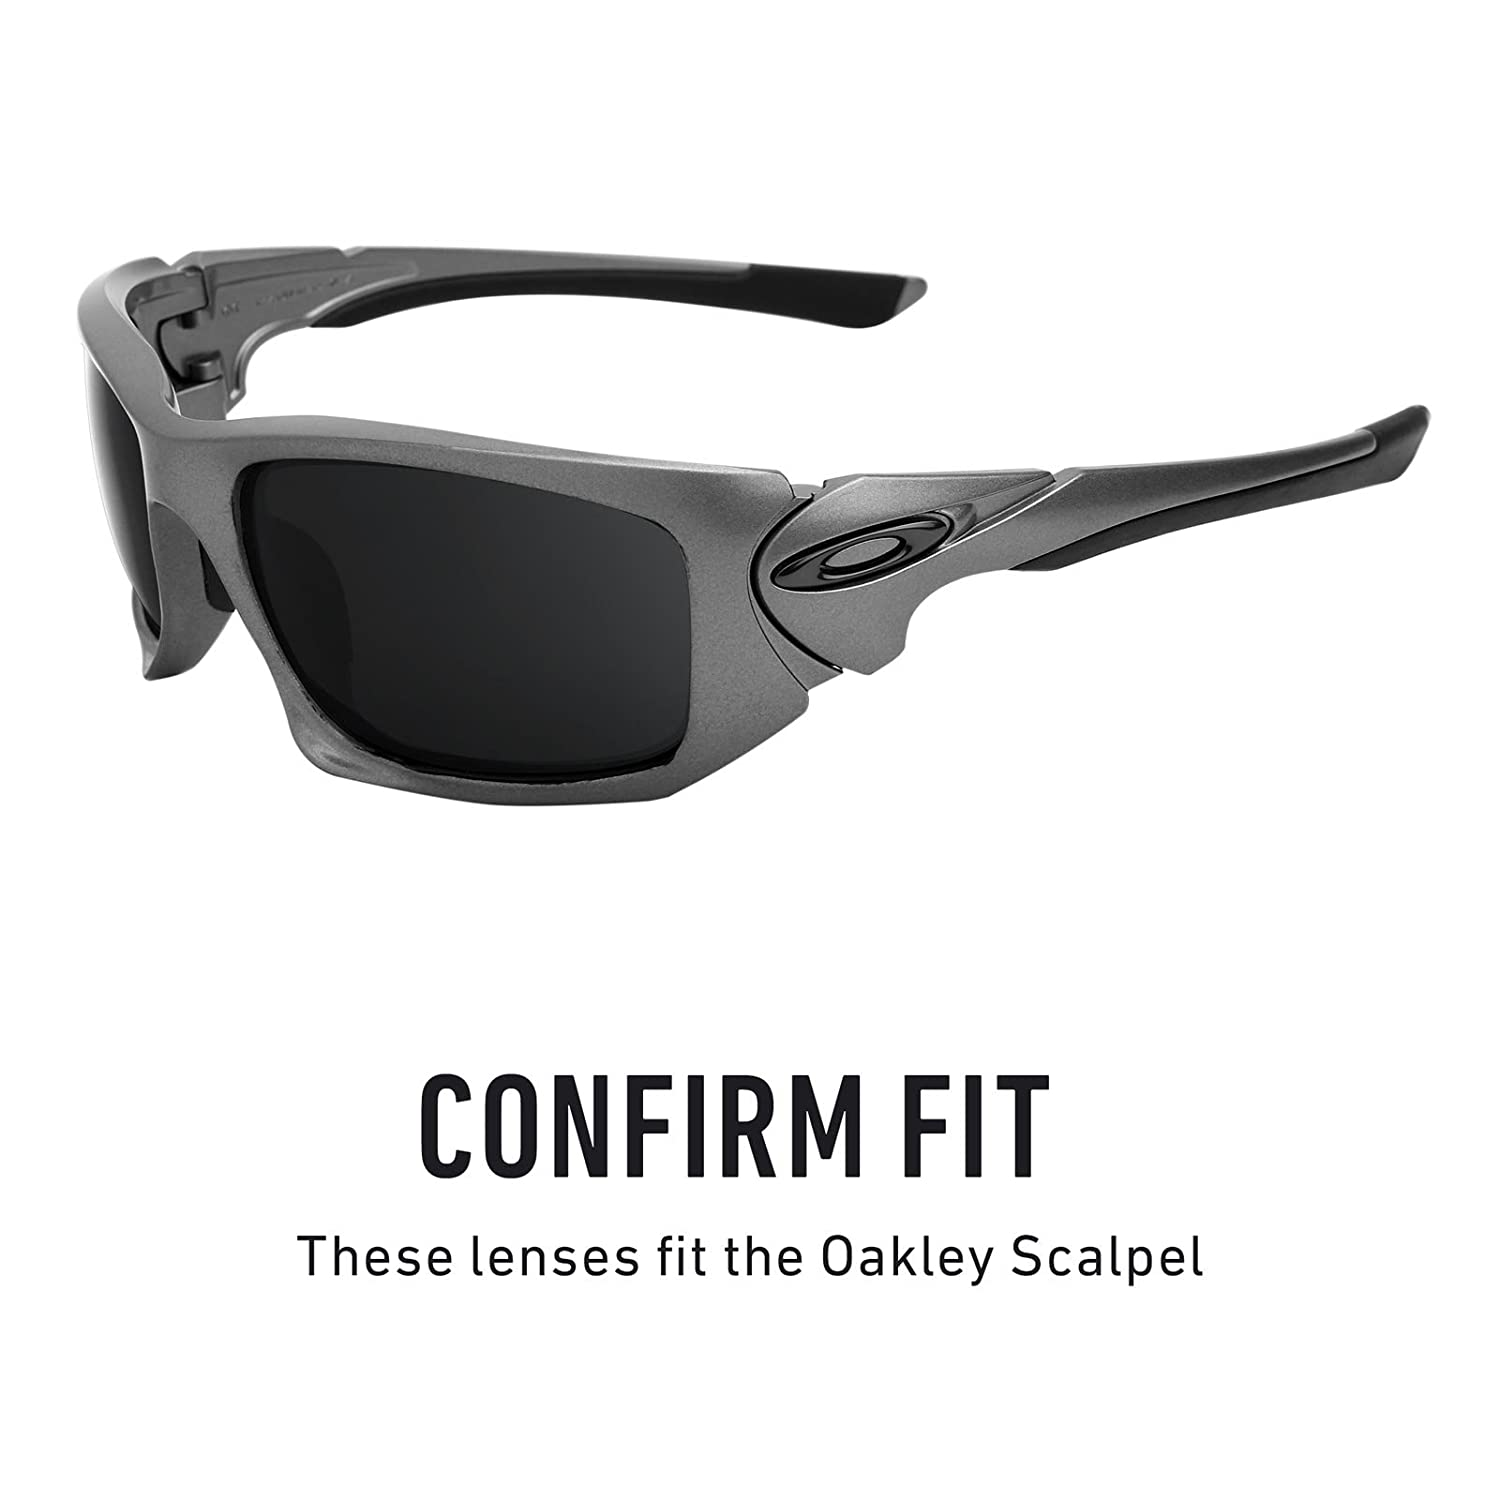 a88318e0bcc Amazon.com  Revant Polarized Replacement Lenses for Oakley Scalpel Elite  Black Chrome MirrorShield  Sports   Outdoors